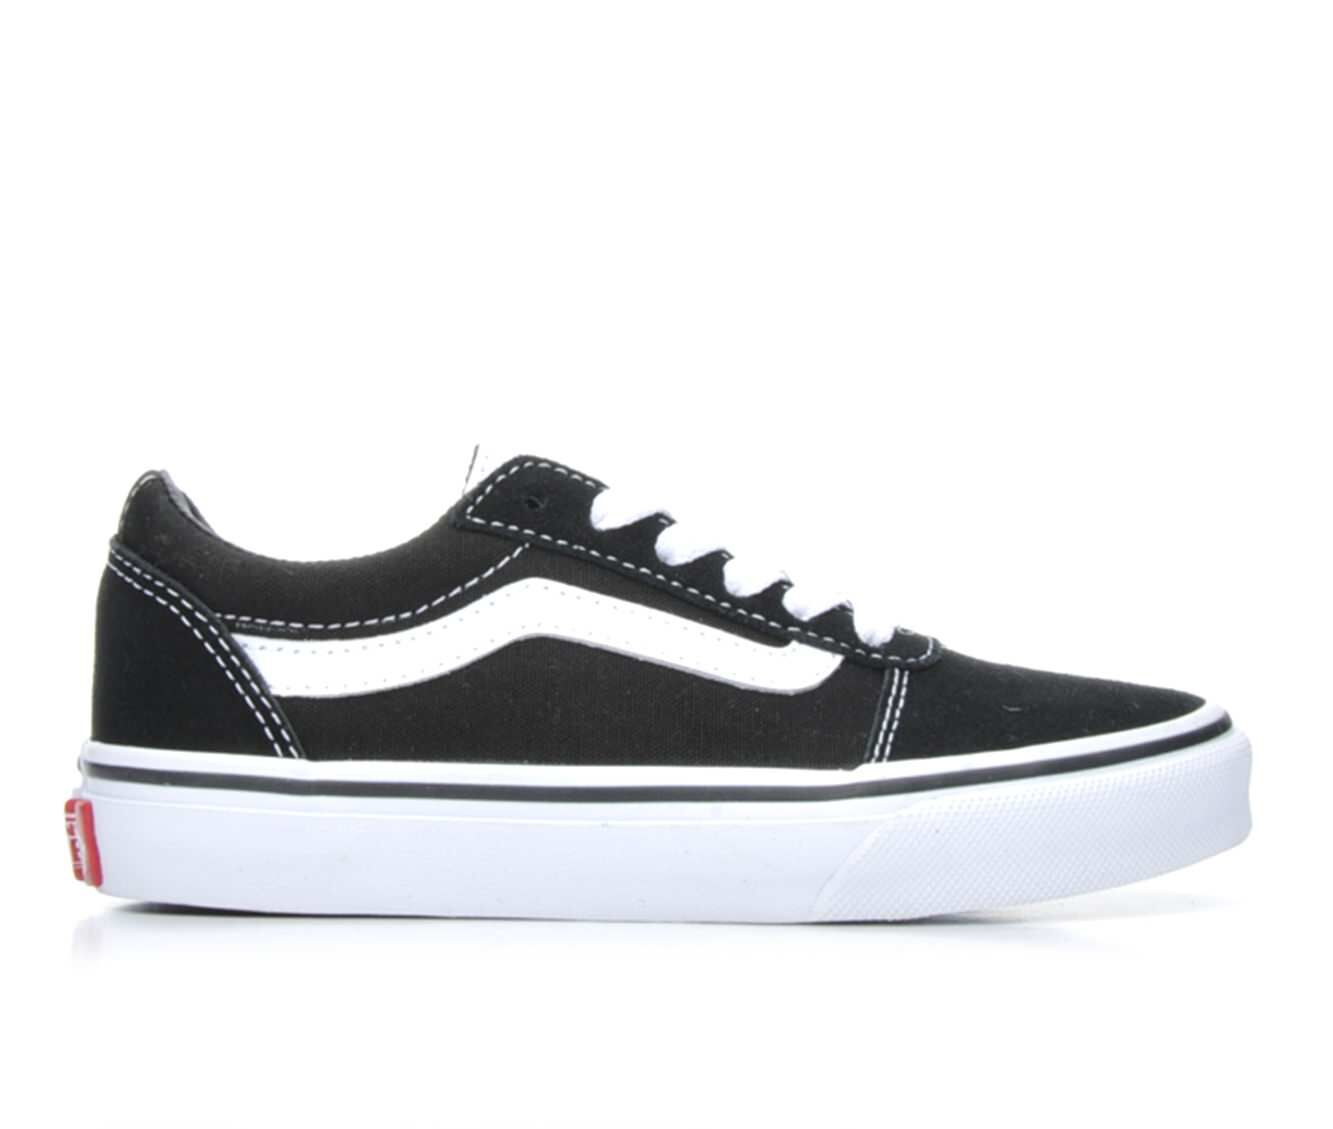 Vans Skate Shoes   Shoe Carnival Kids  39  Vans Ward 10 5 7 Skate Shoes